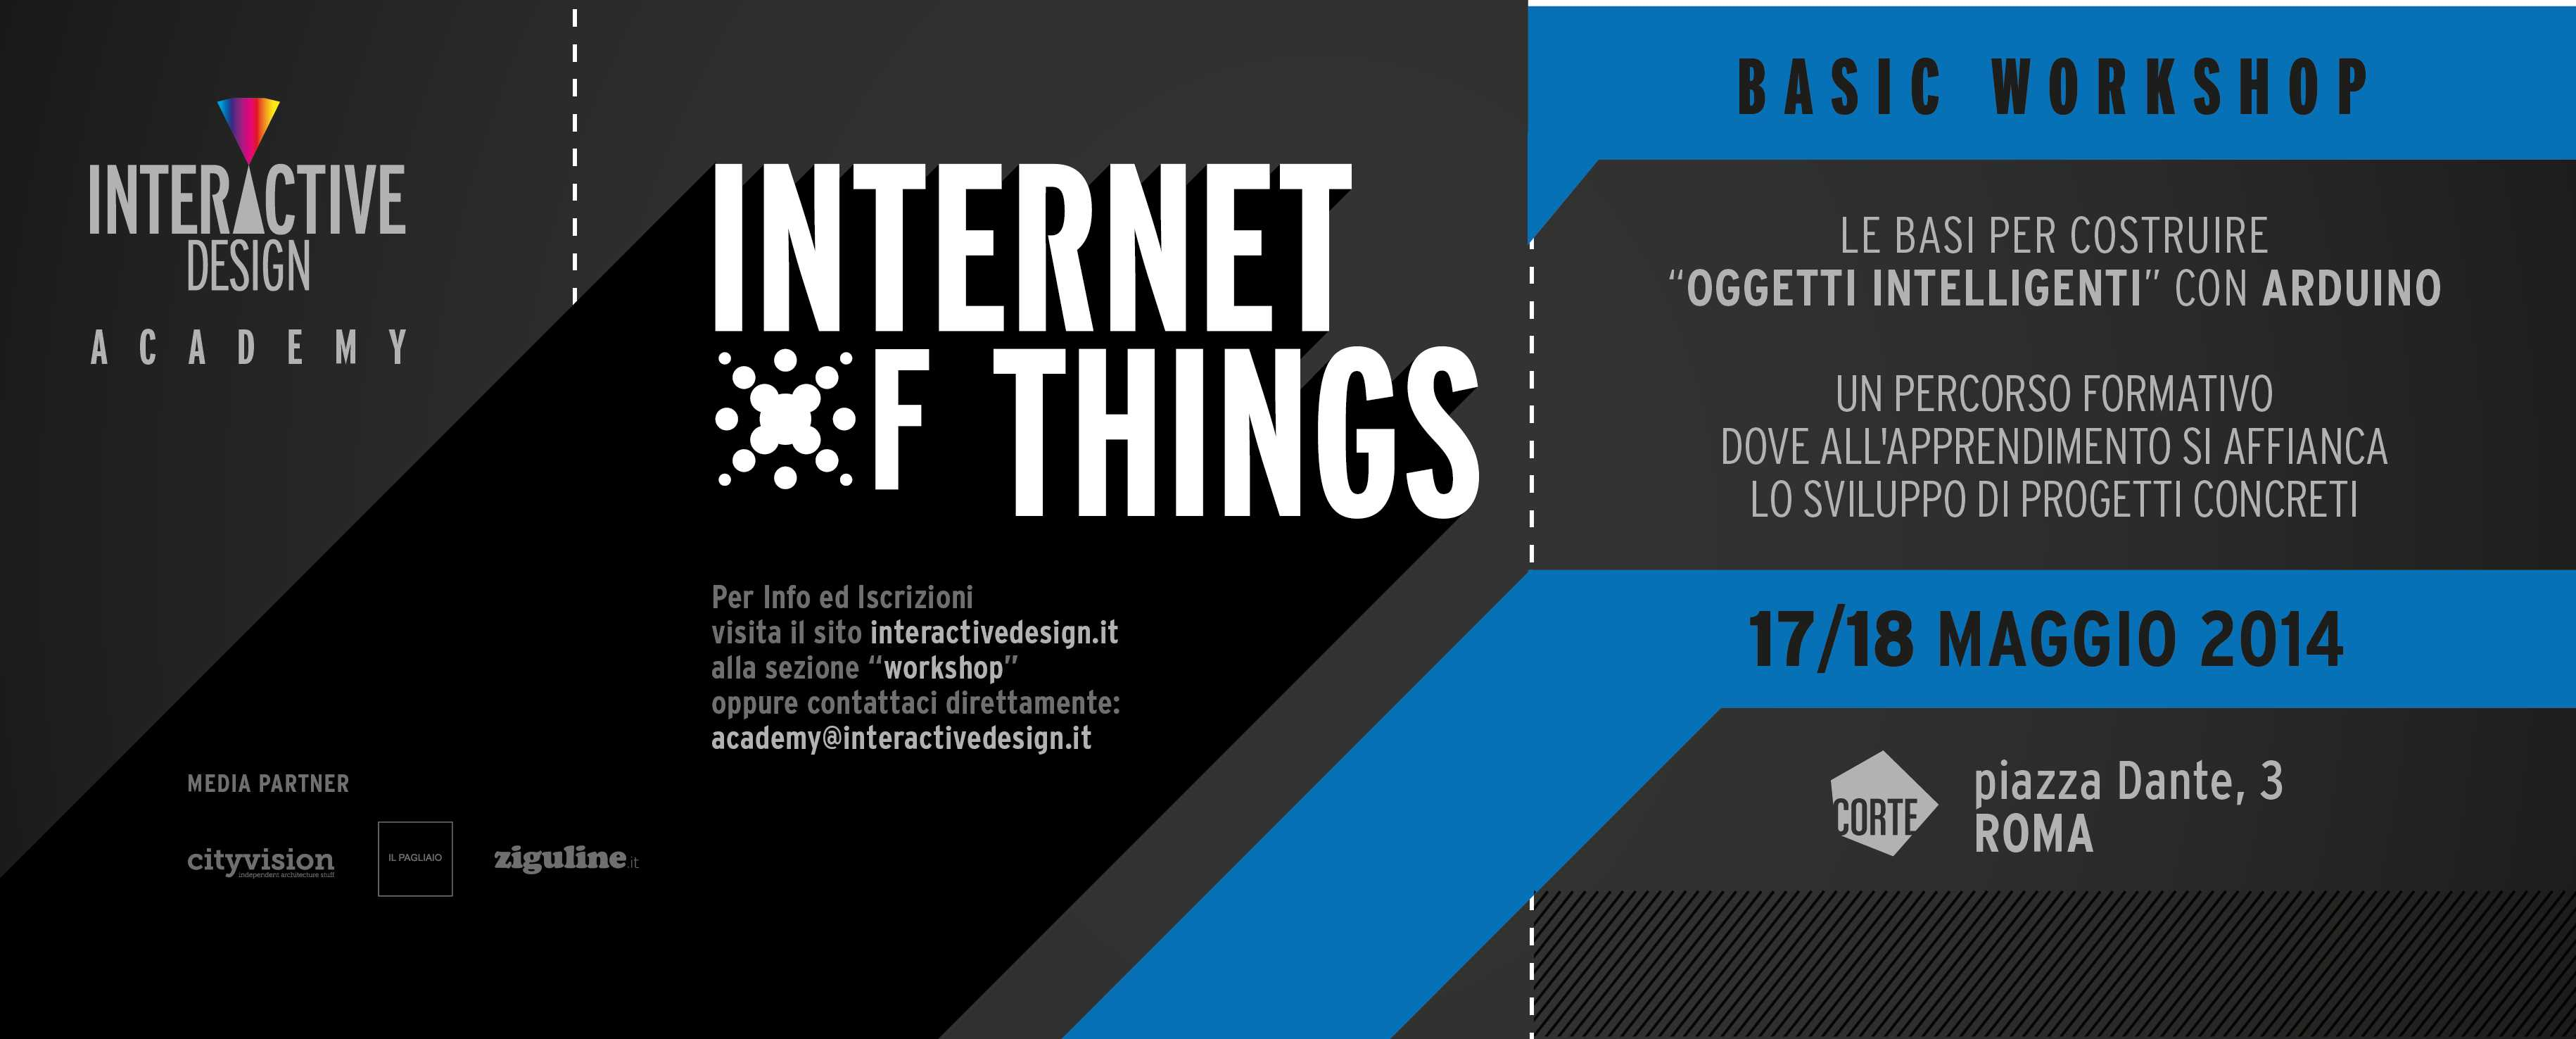 Internet of Things: a Roma il workshop dedicato agli oggetti intelligenti